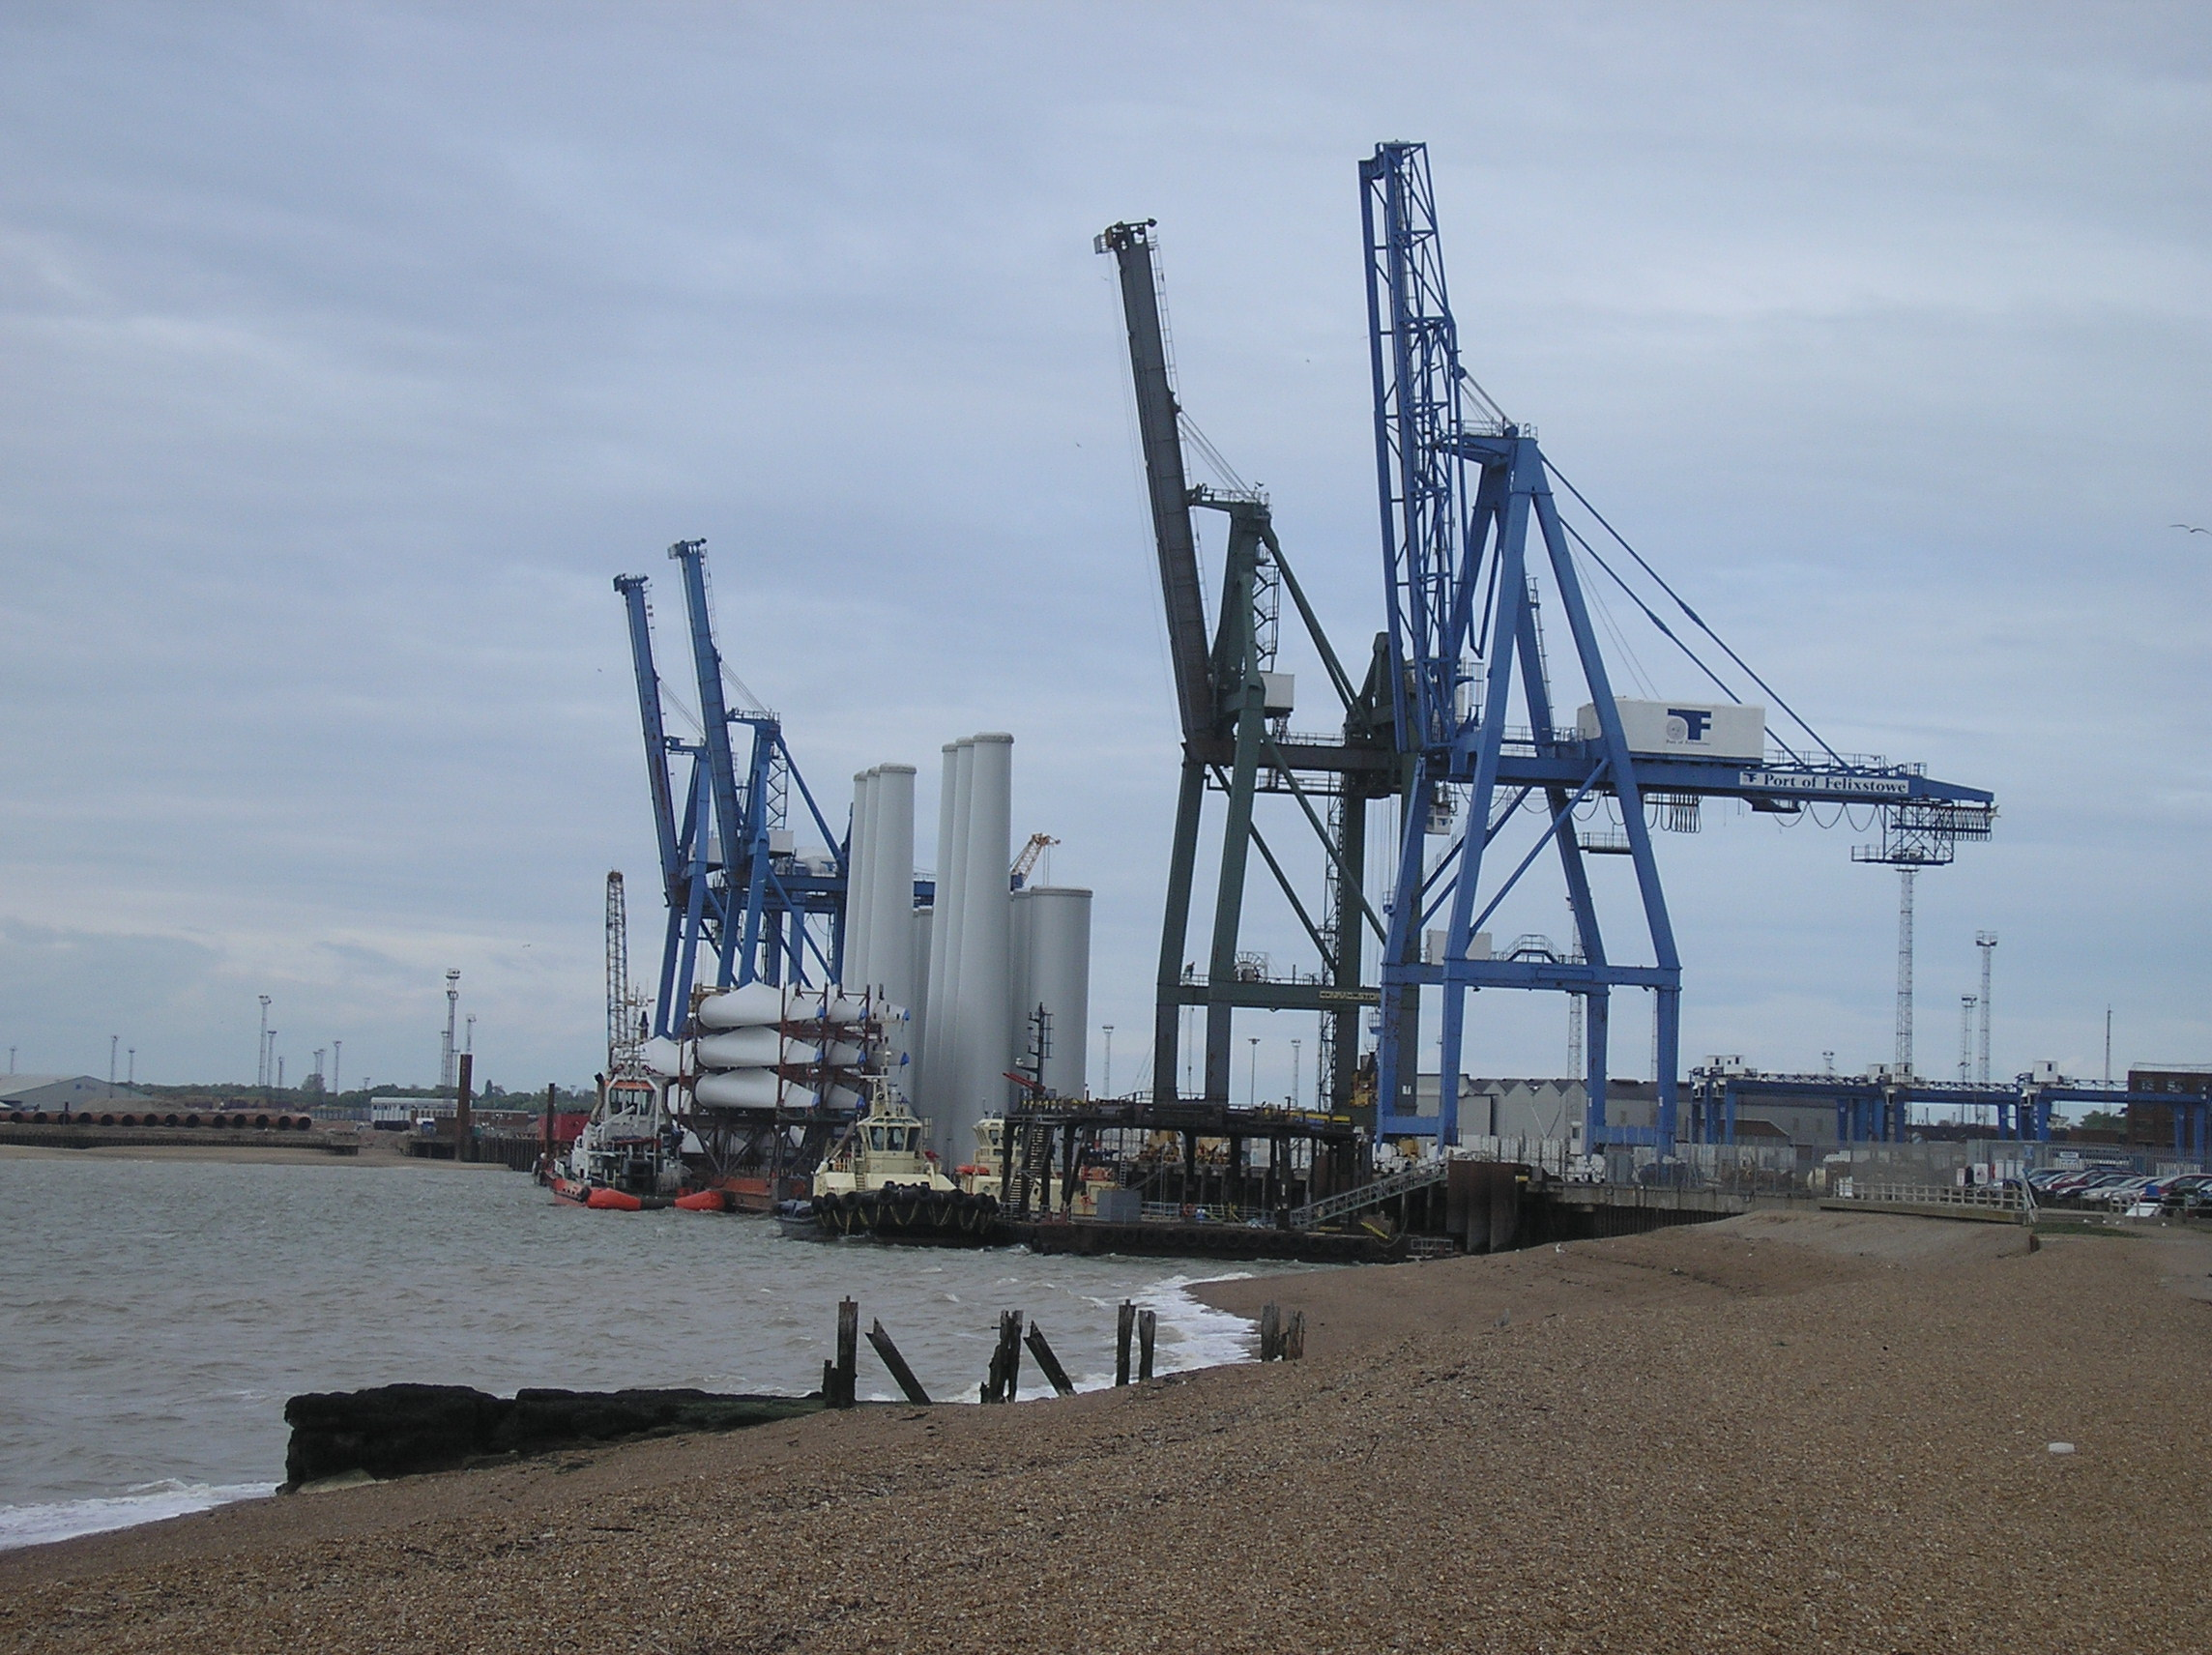 The Port of Felixstowe is Britain's busiest, and one of Europe's most important, freight container terminals. 